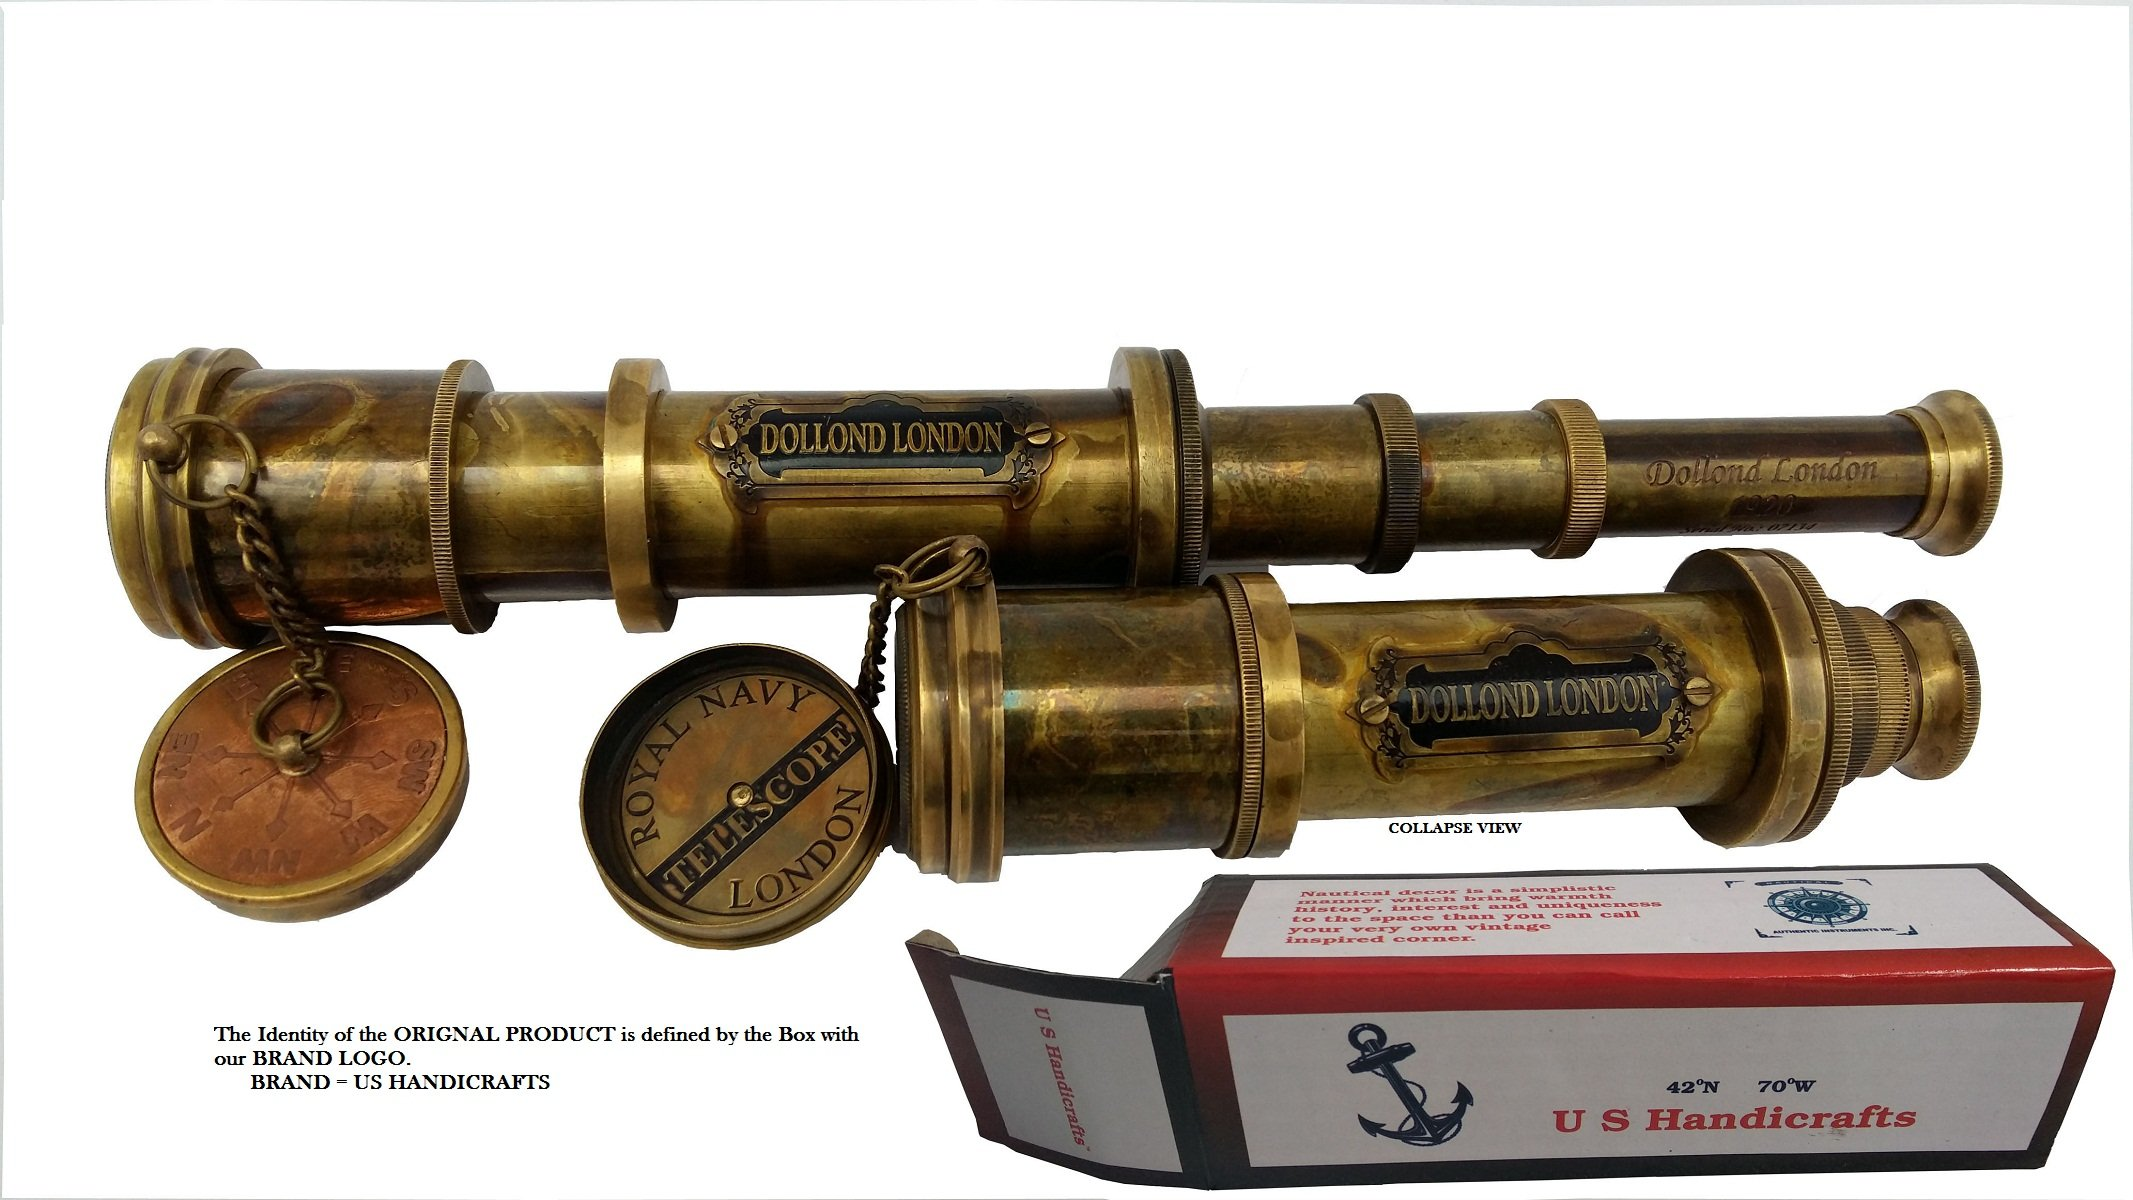 US HANDICRAFTS Antique Style - Marine Sailor-Dollond London Spyglass, 16 inch Brass Telescope with High Resolution, Beautiful Lid and Finish by Commando Antique …